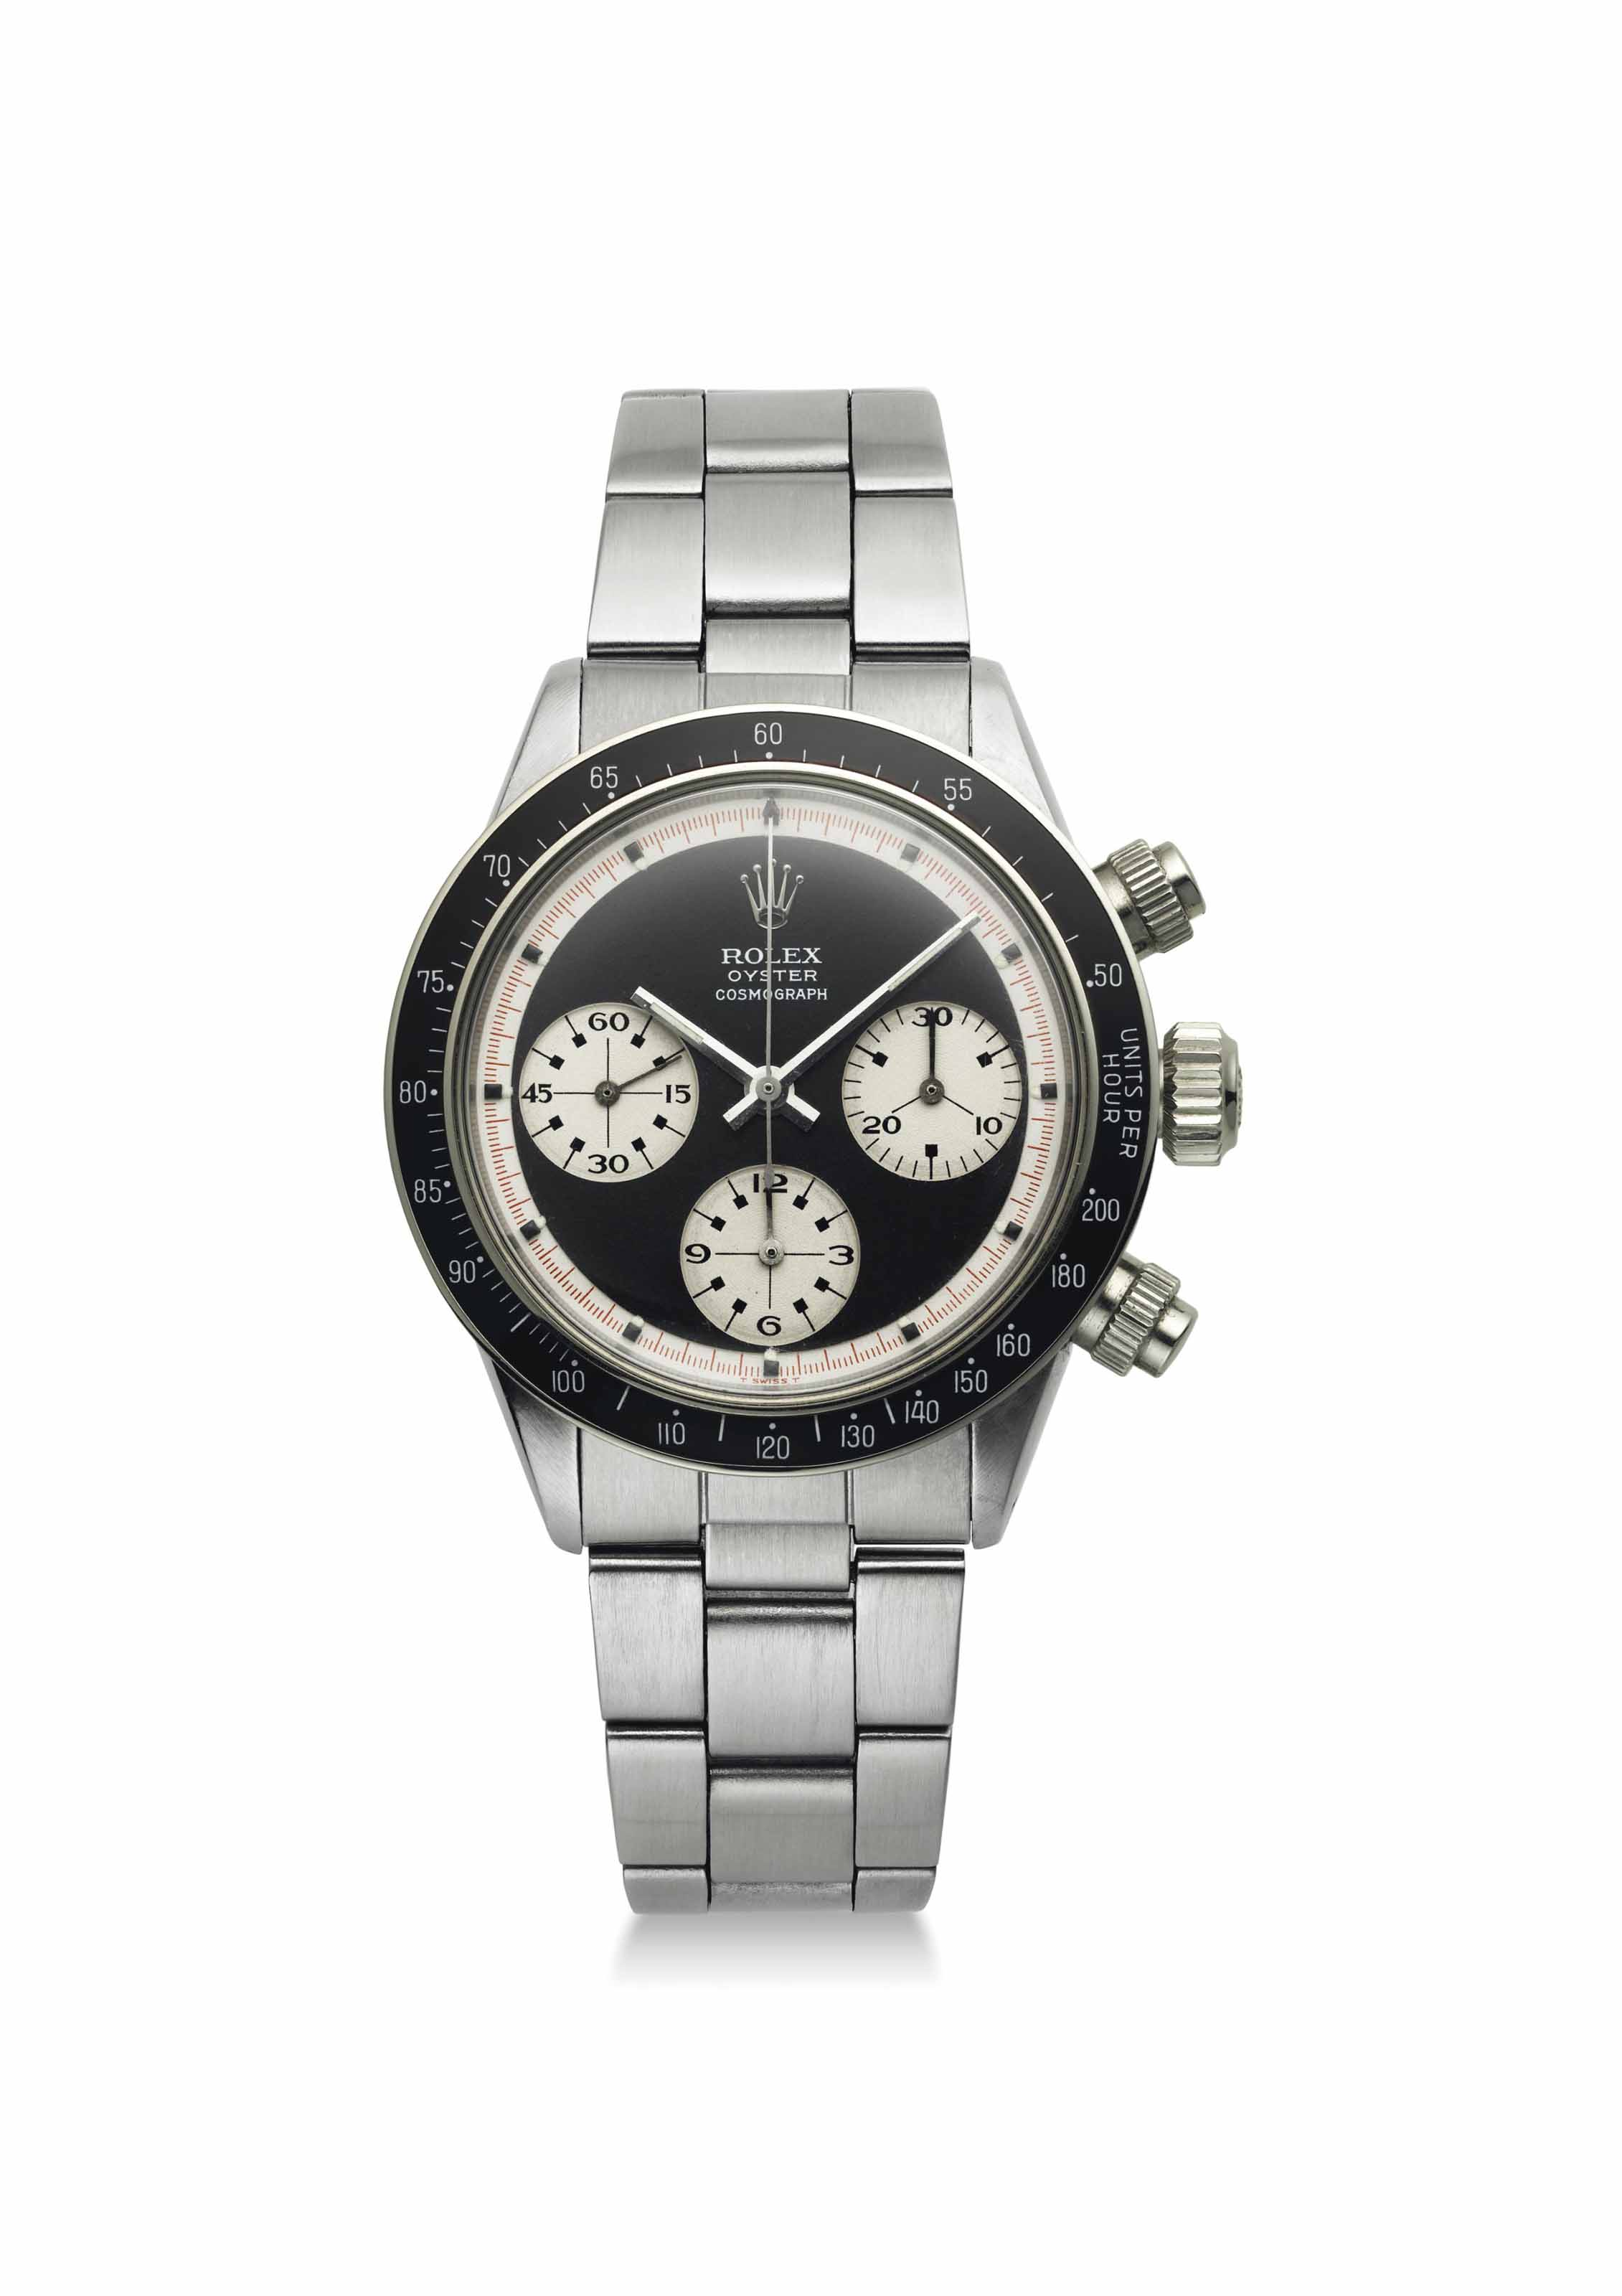 Rolex. An extremely fine, possibly unique and previously unknown stainless steel chronograph wristwatch with black non-Oyster sotto Paul Newman dial